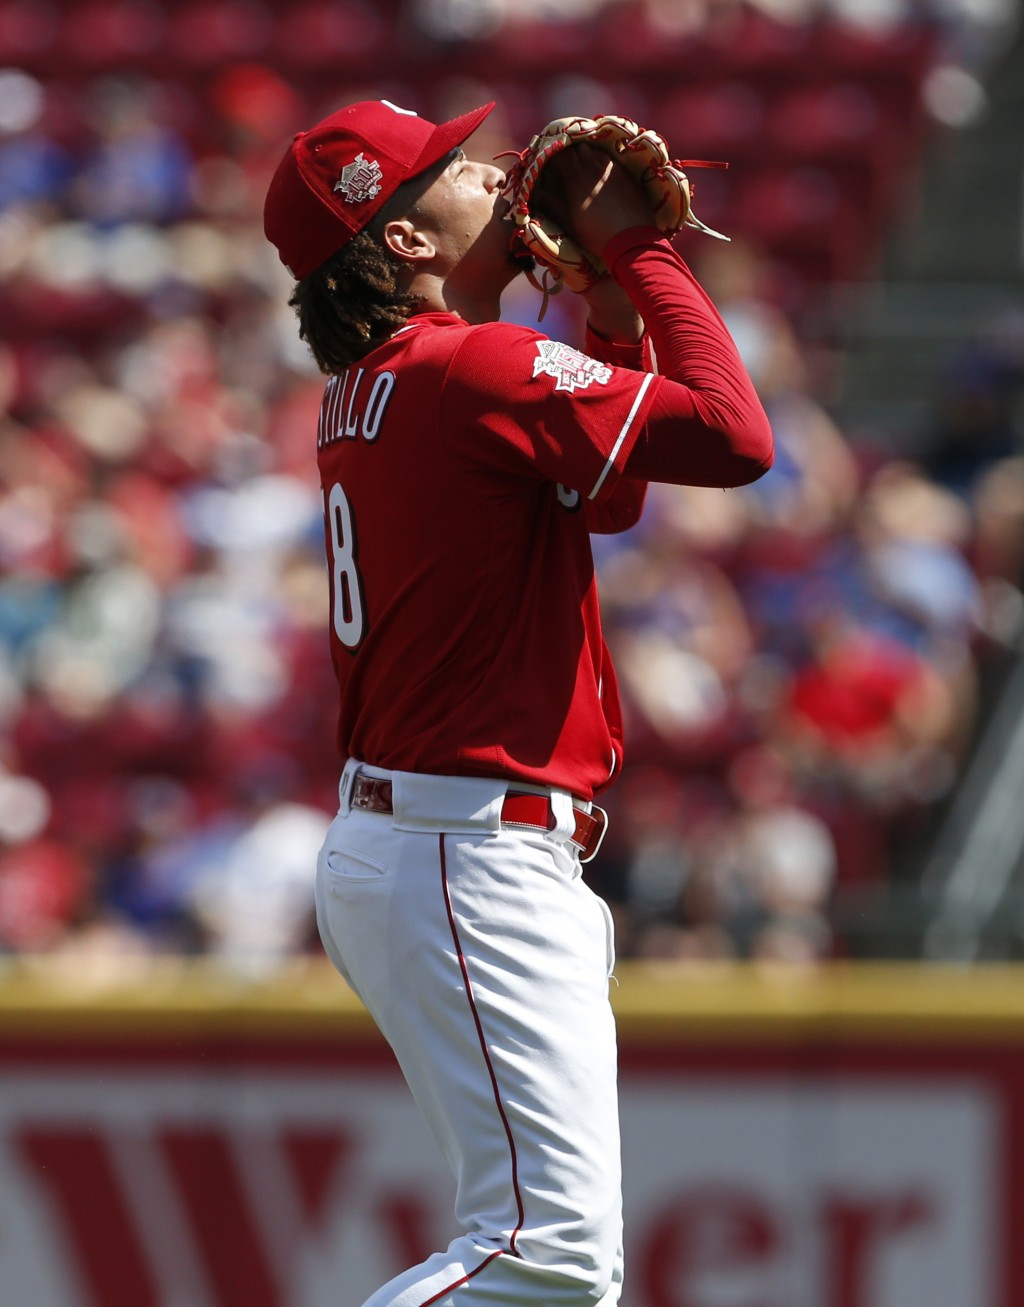 Cincinnati Reds starting pitcher Luis Castillo looks skyward after striking out the side during the first inning of a baseball game against the Chicag...